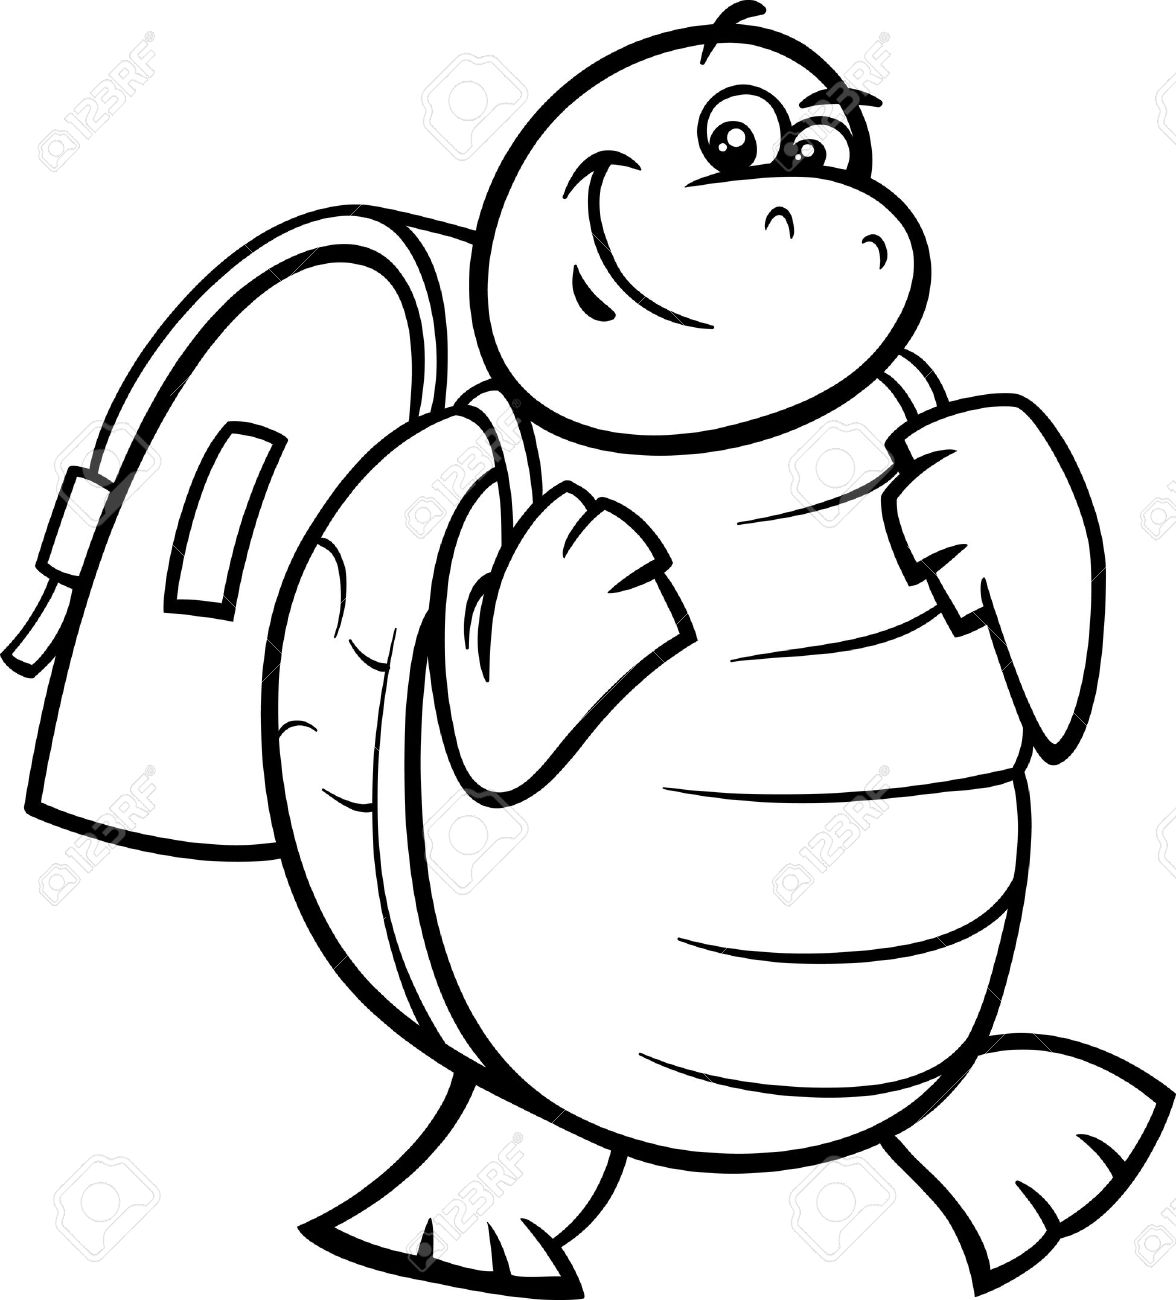 Coloring book bag - Black And White Cartoon Illustration Of Happy Turtle Animal Character With Satchel Or School Bag For